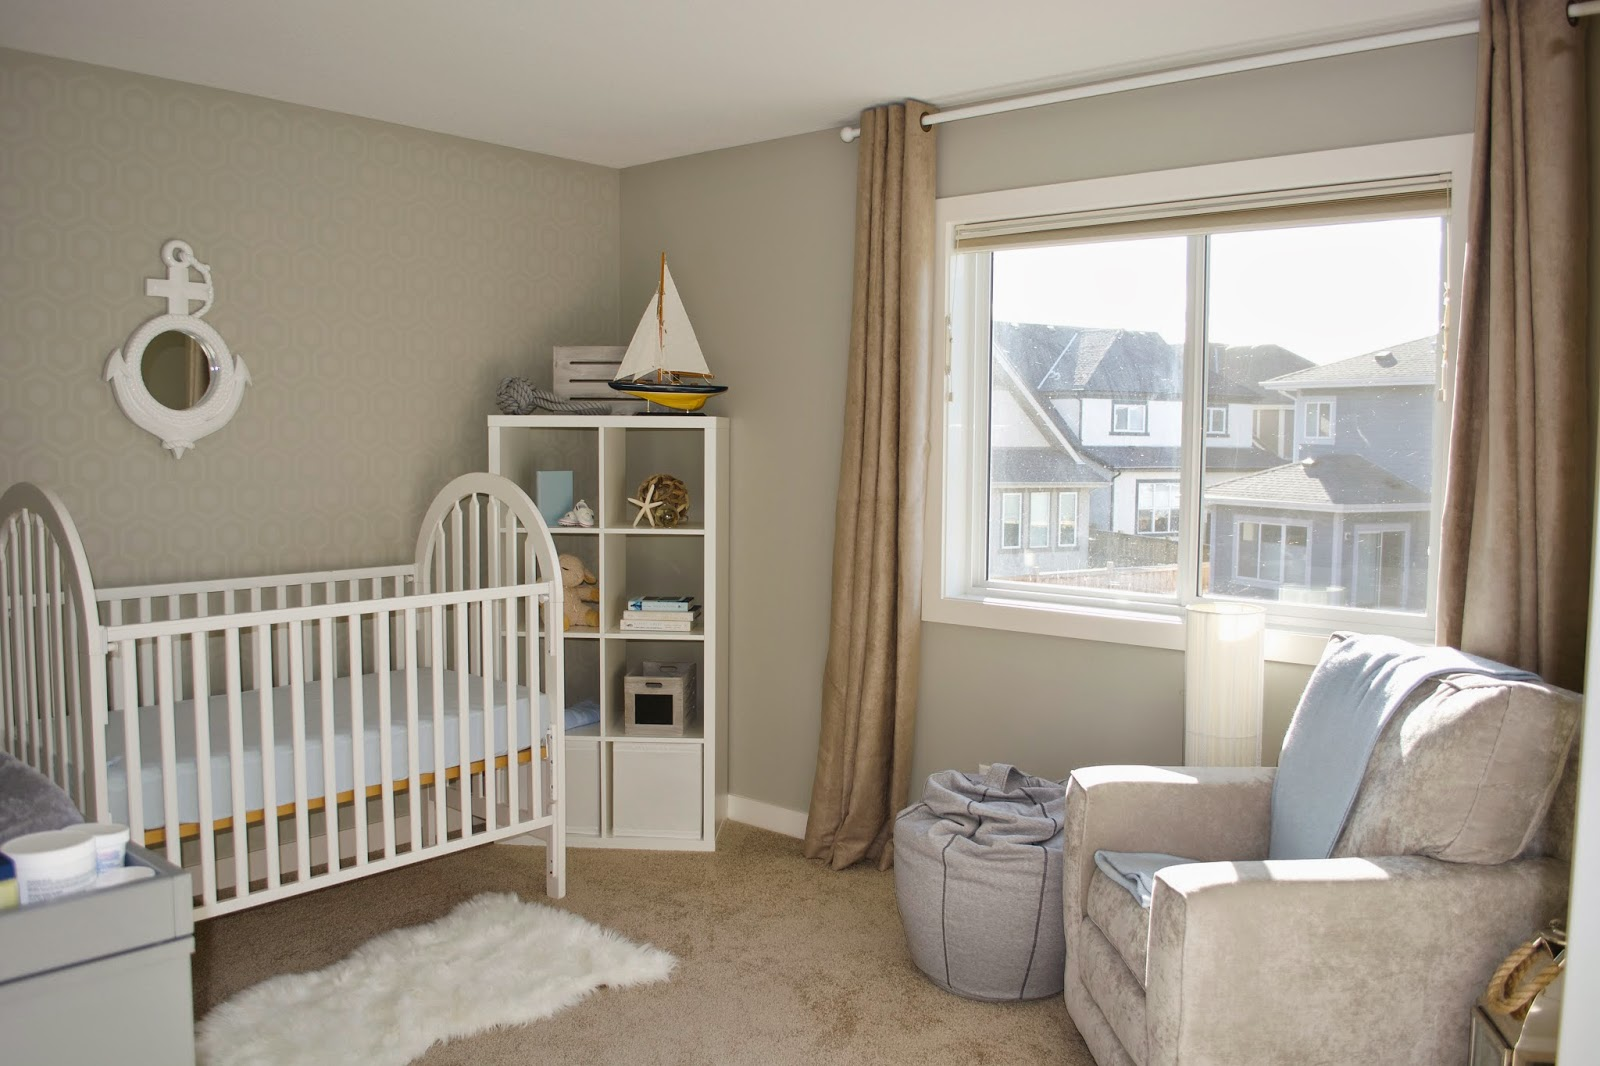 Baby Will's Room!